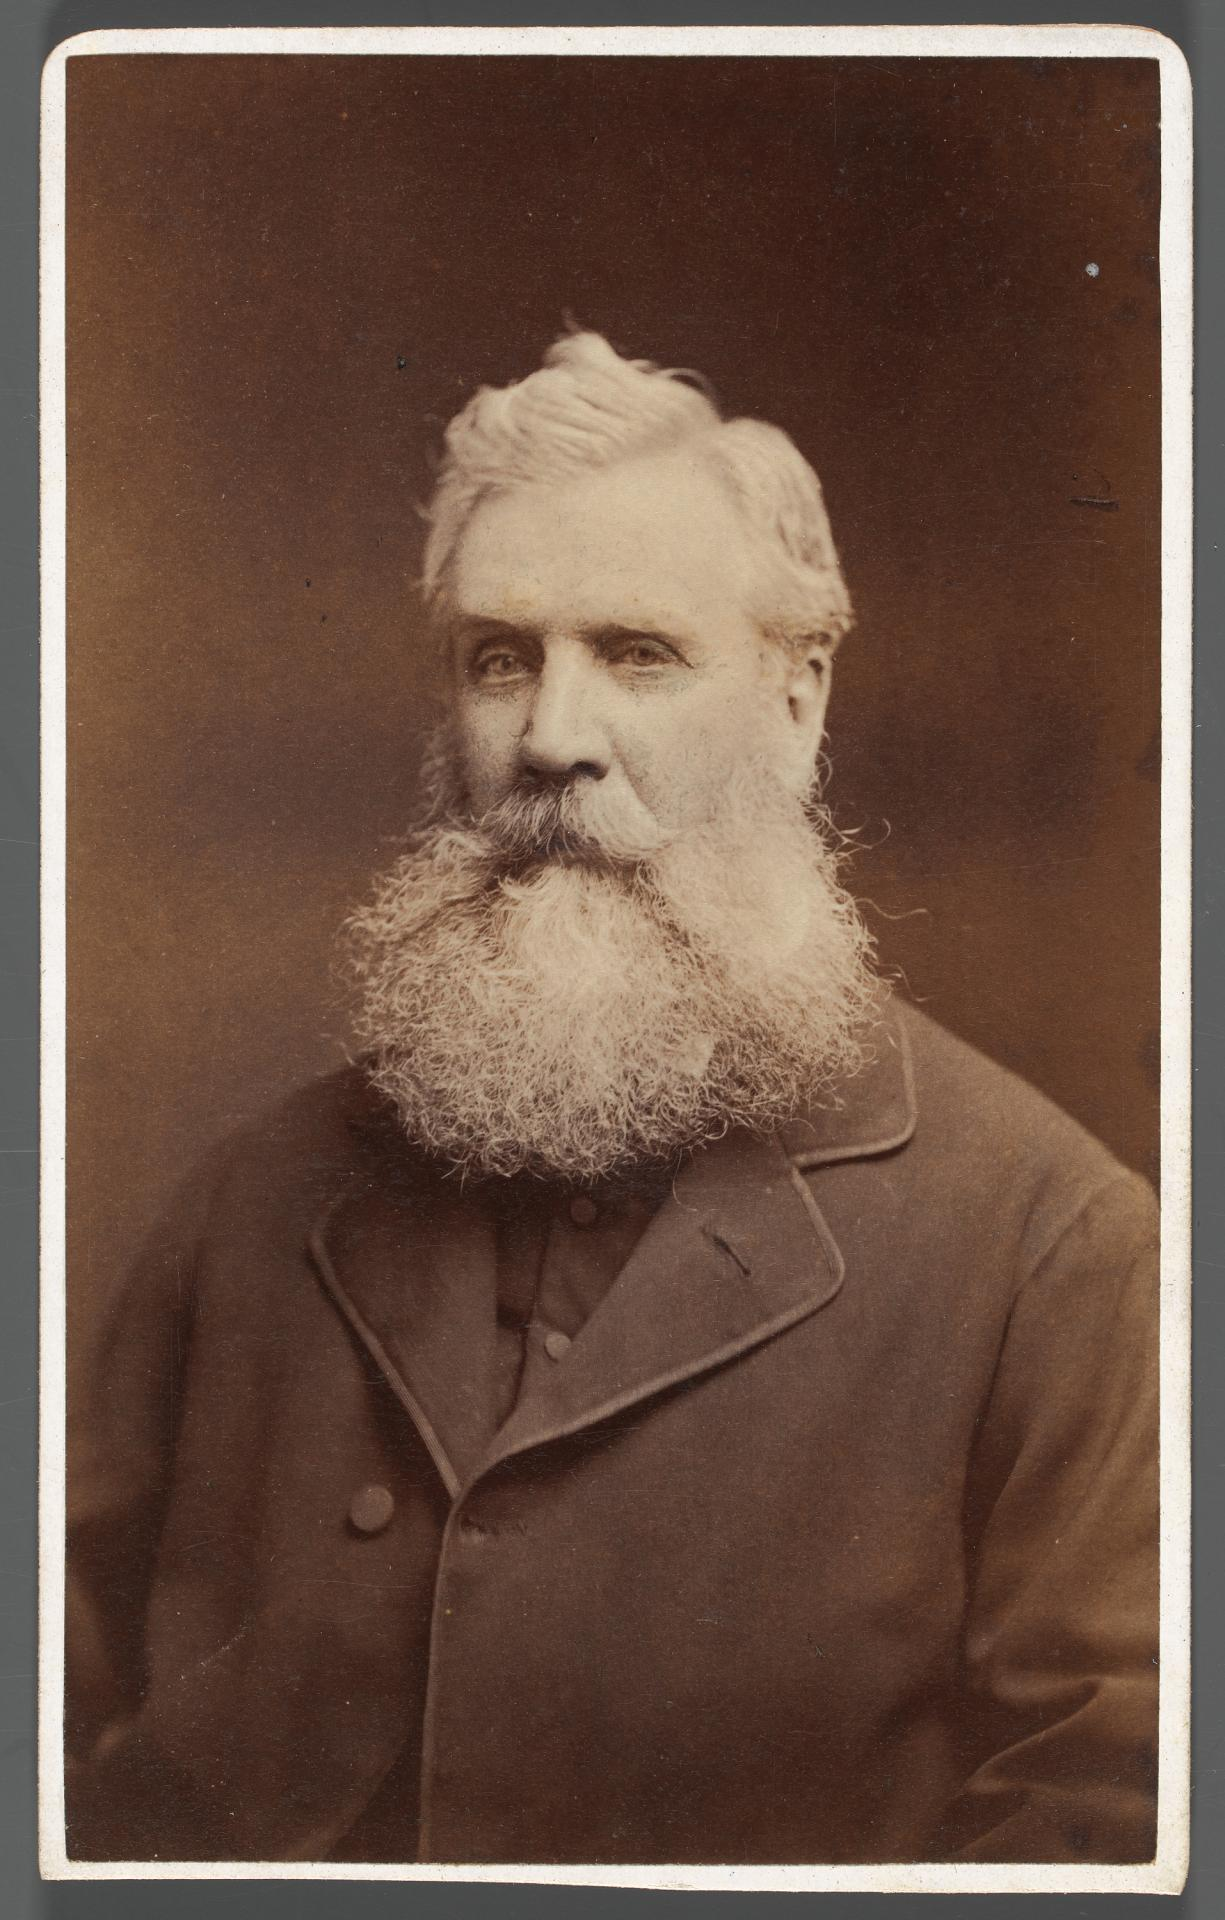 No title (Man with white beard), carte-de-visite